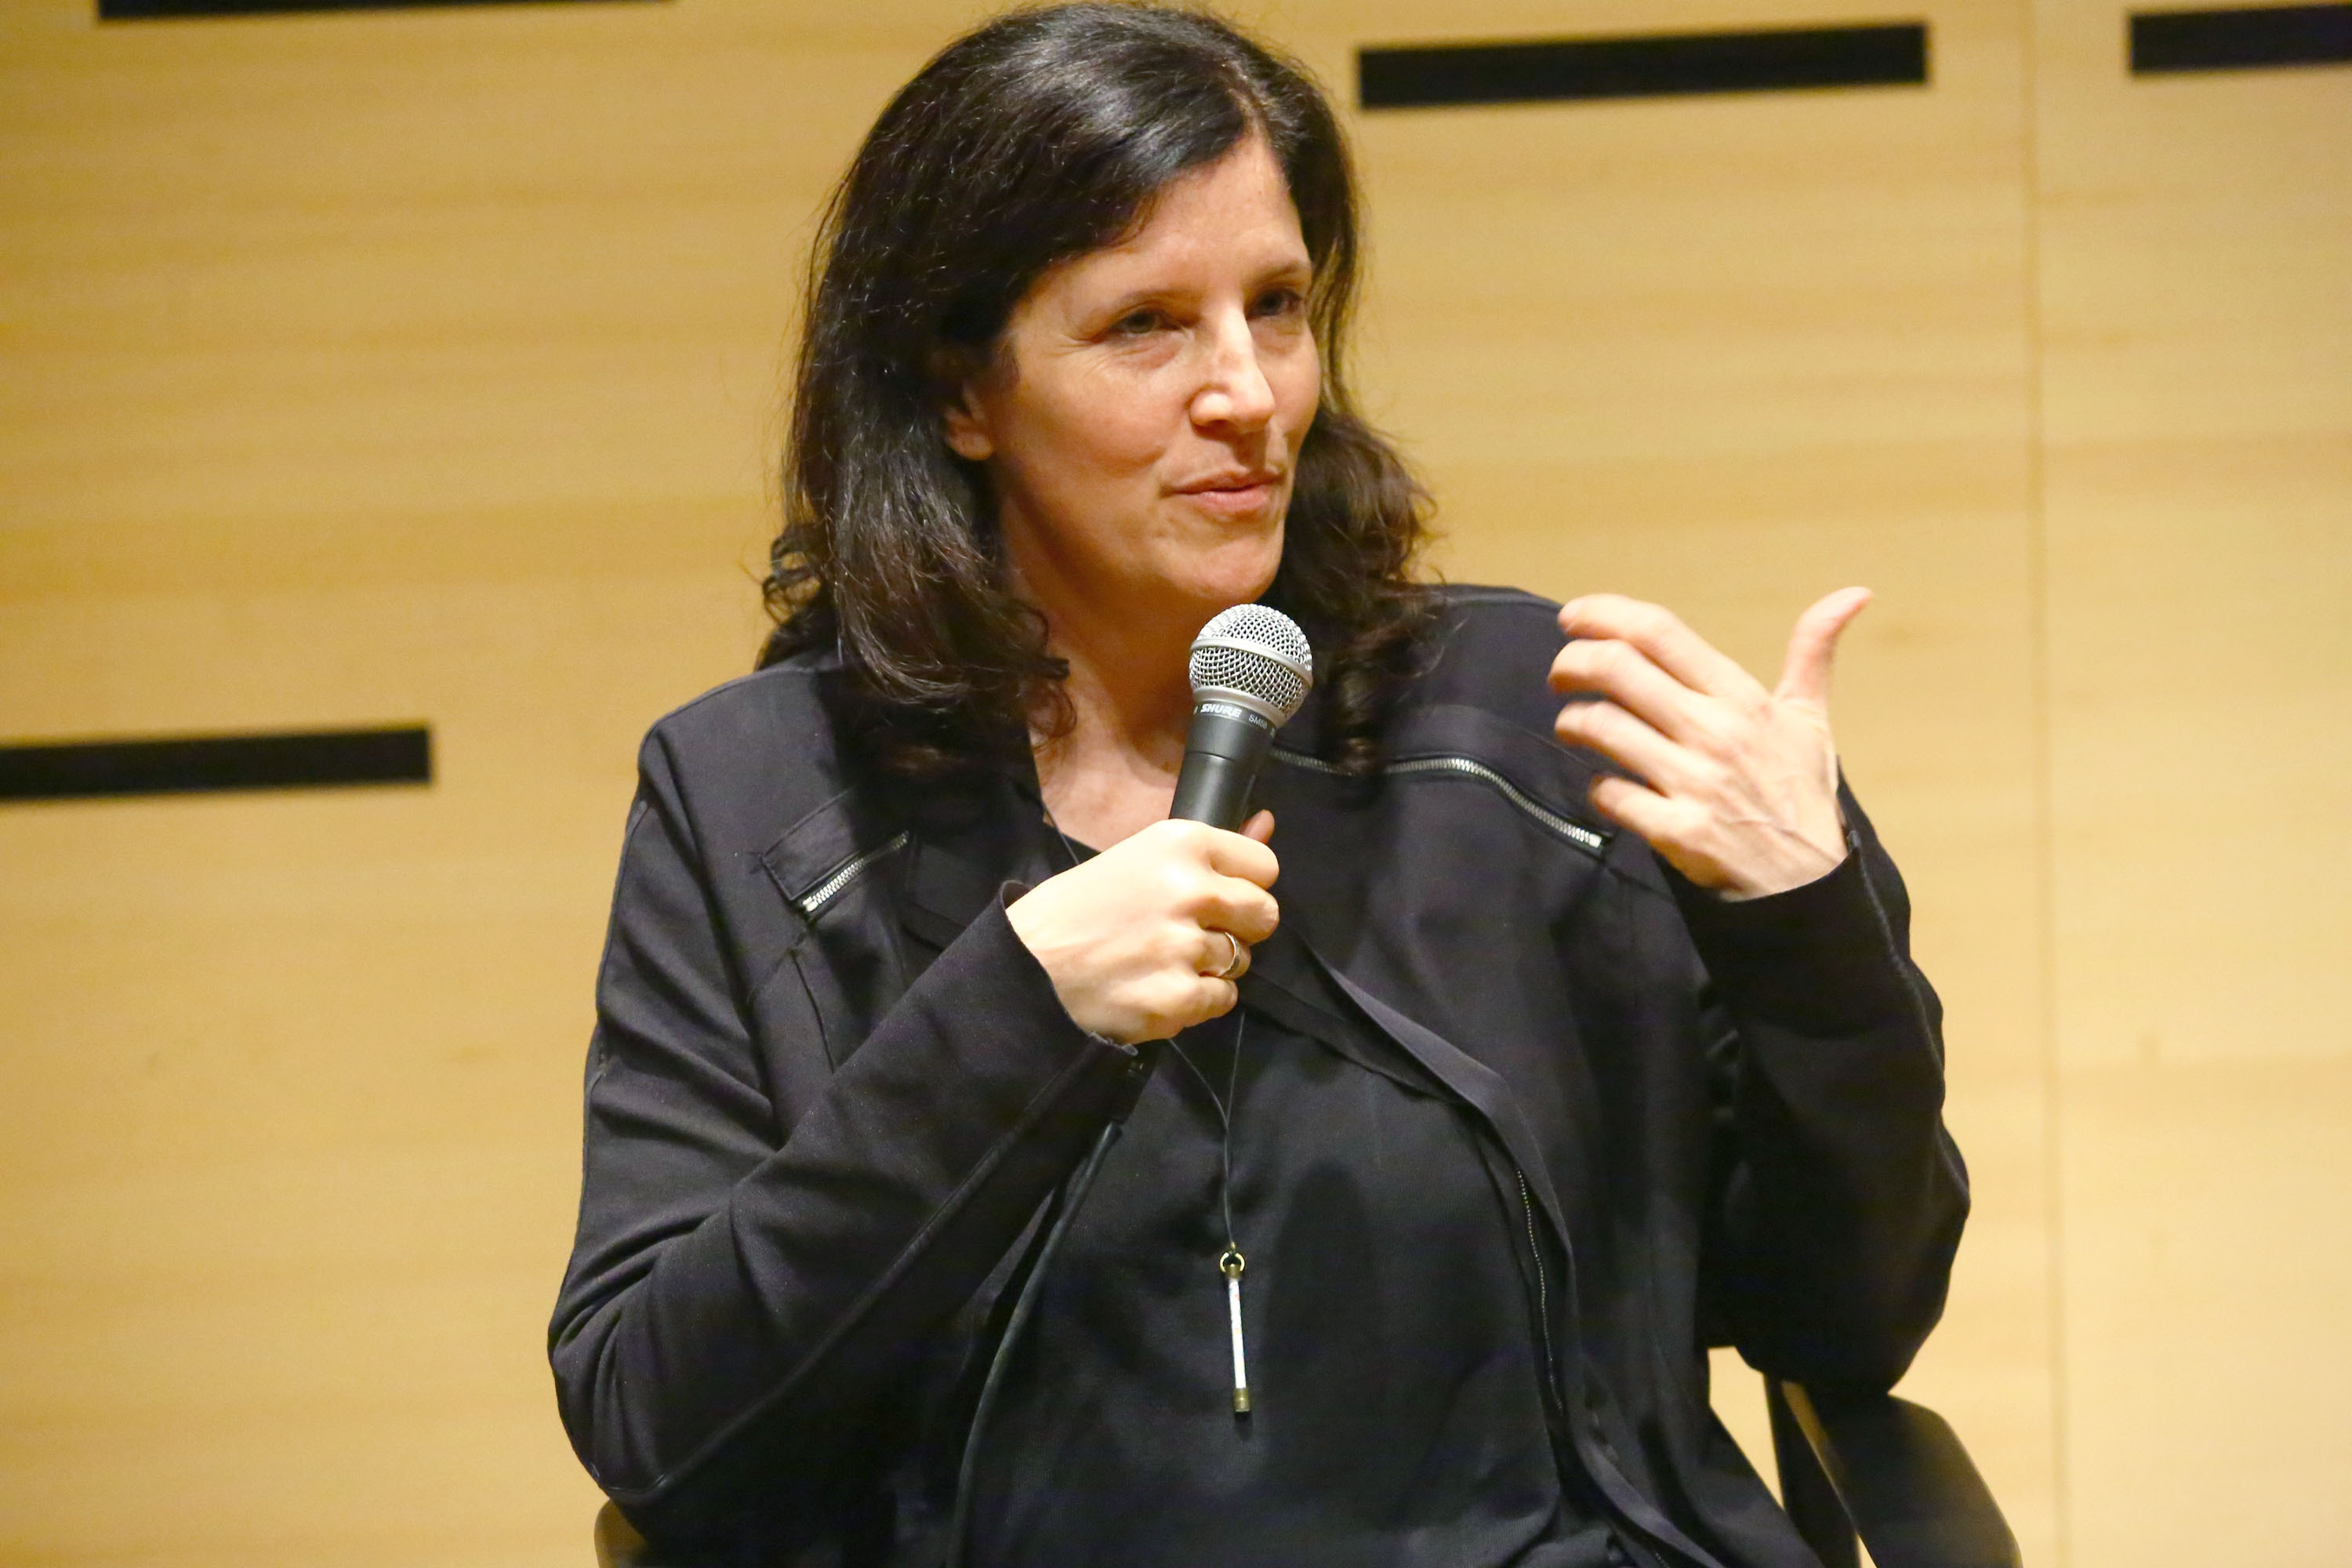 """""""Citizenfour"""" director and Snowden confidant Laura Poitras is among those who signed the open letter."""